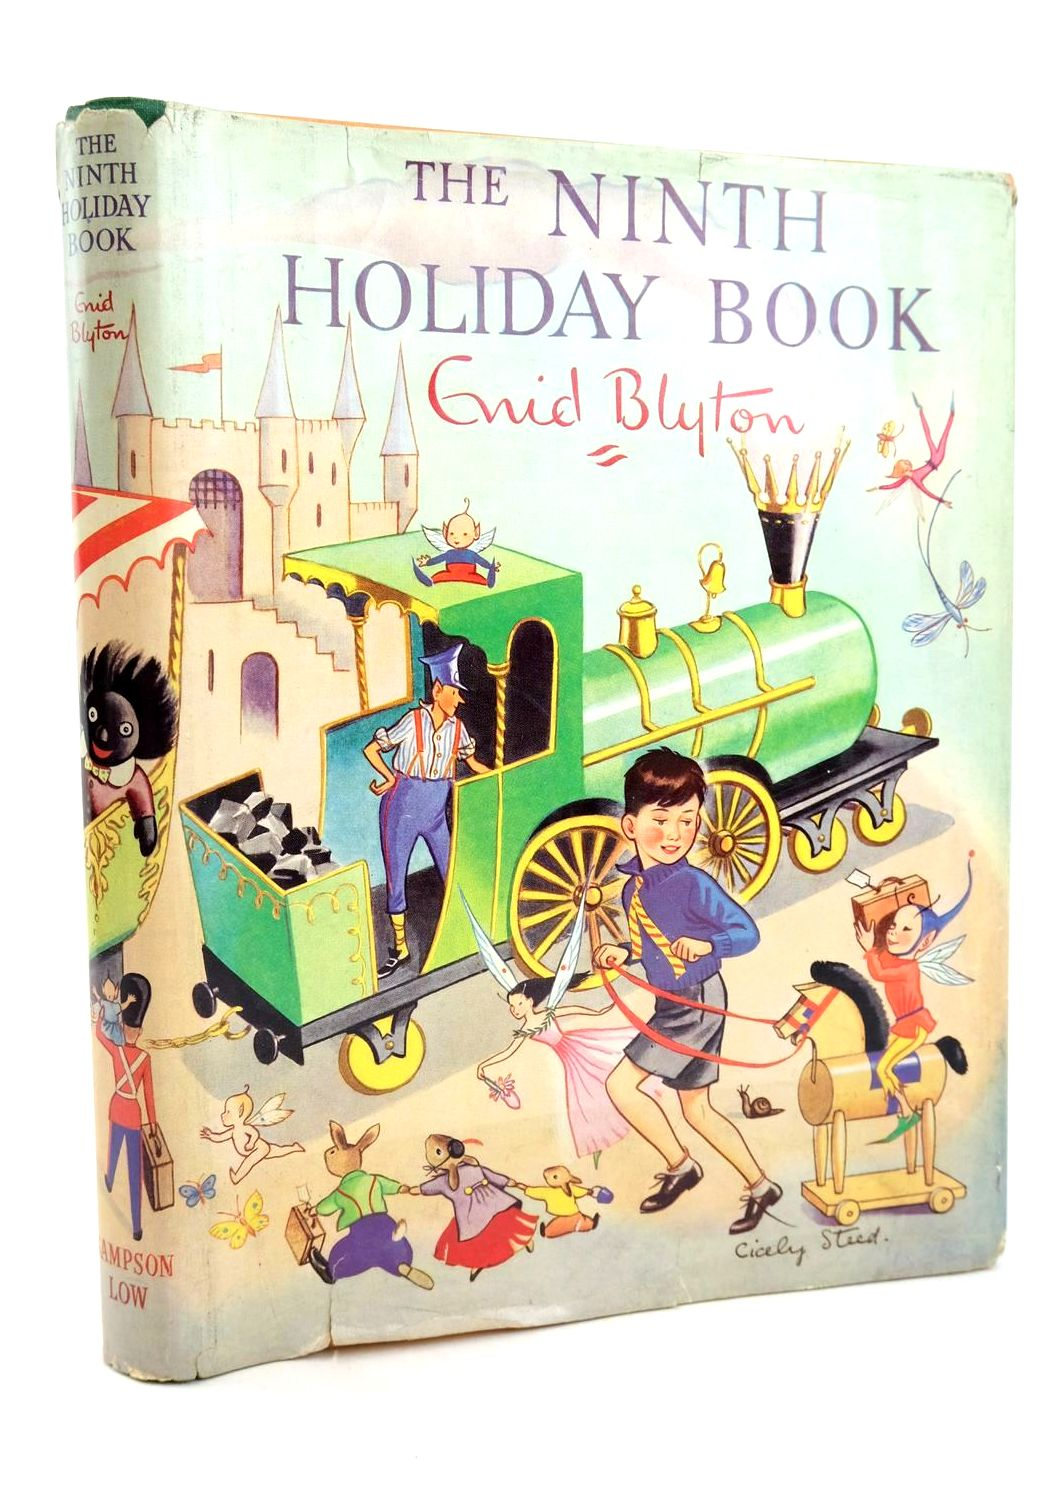 Photo of THE NINTH HOLIDAY BOOK written by Blyton, Enid illustrated by Lodge, Grace Jacobs, Helen et al.,  published by Sampson Low, Marston & Co., C.A. Publications Ltd. (STOCK CODE: 1318764)  for sale by Stella & Rose's Books